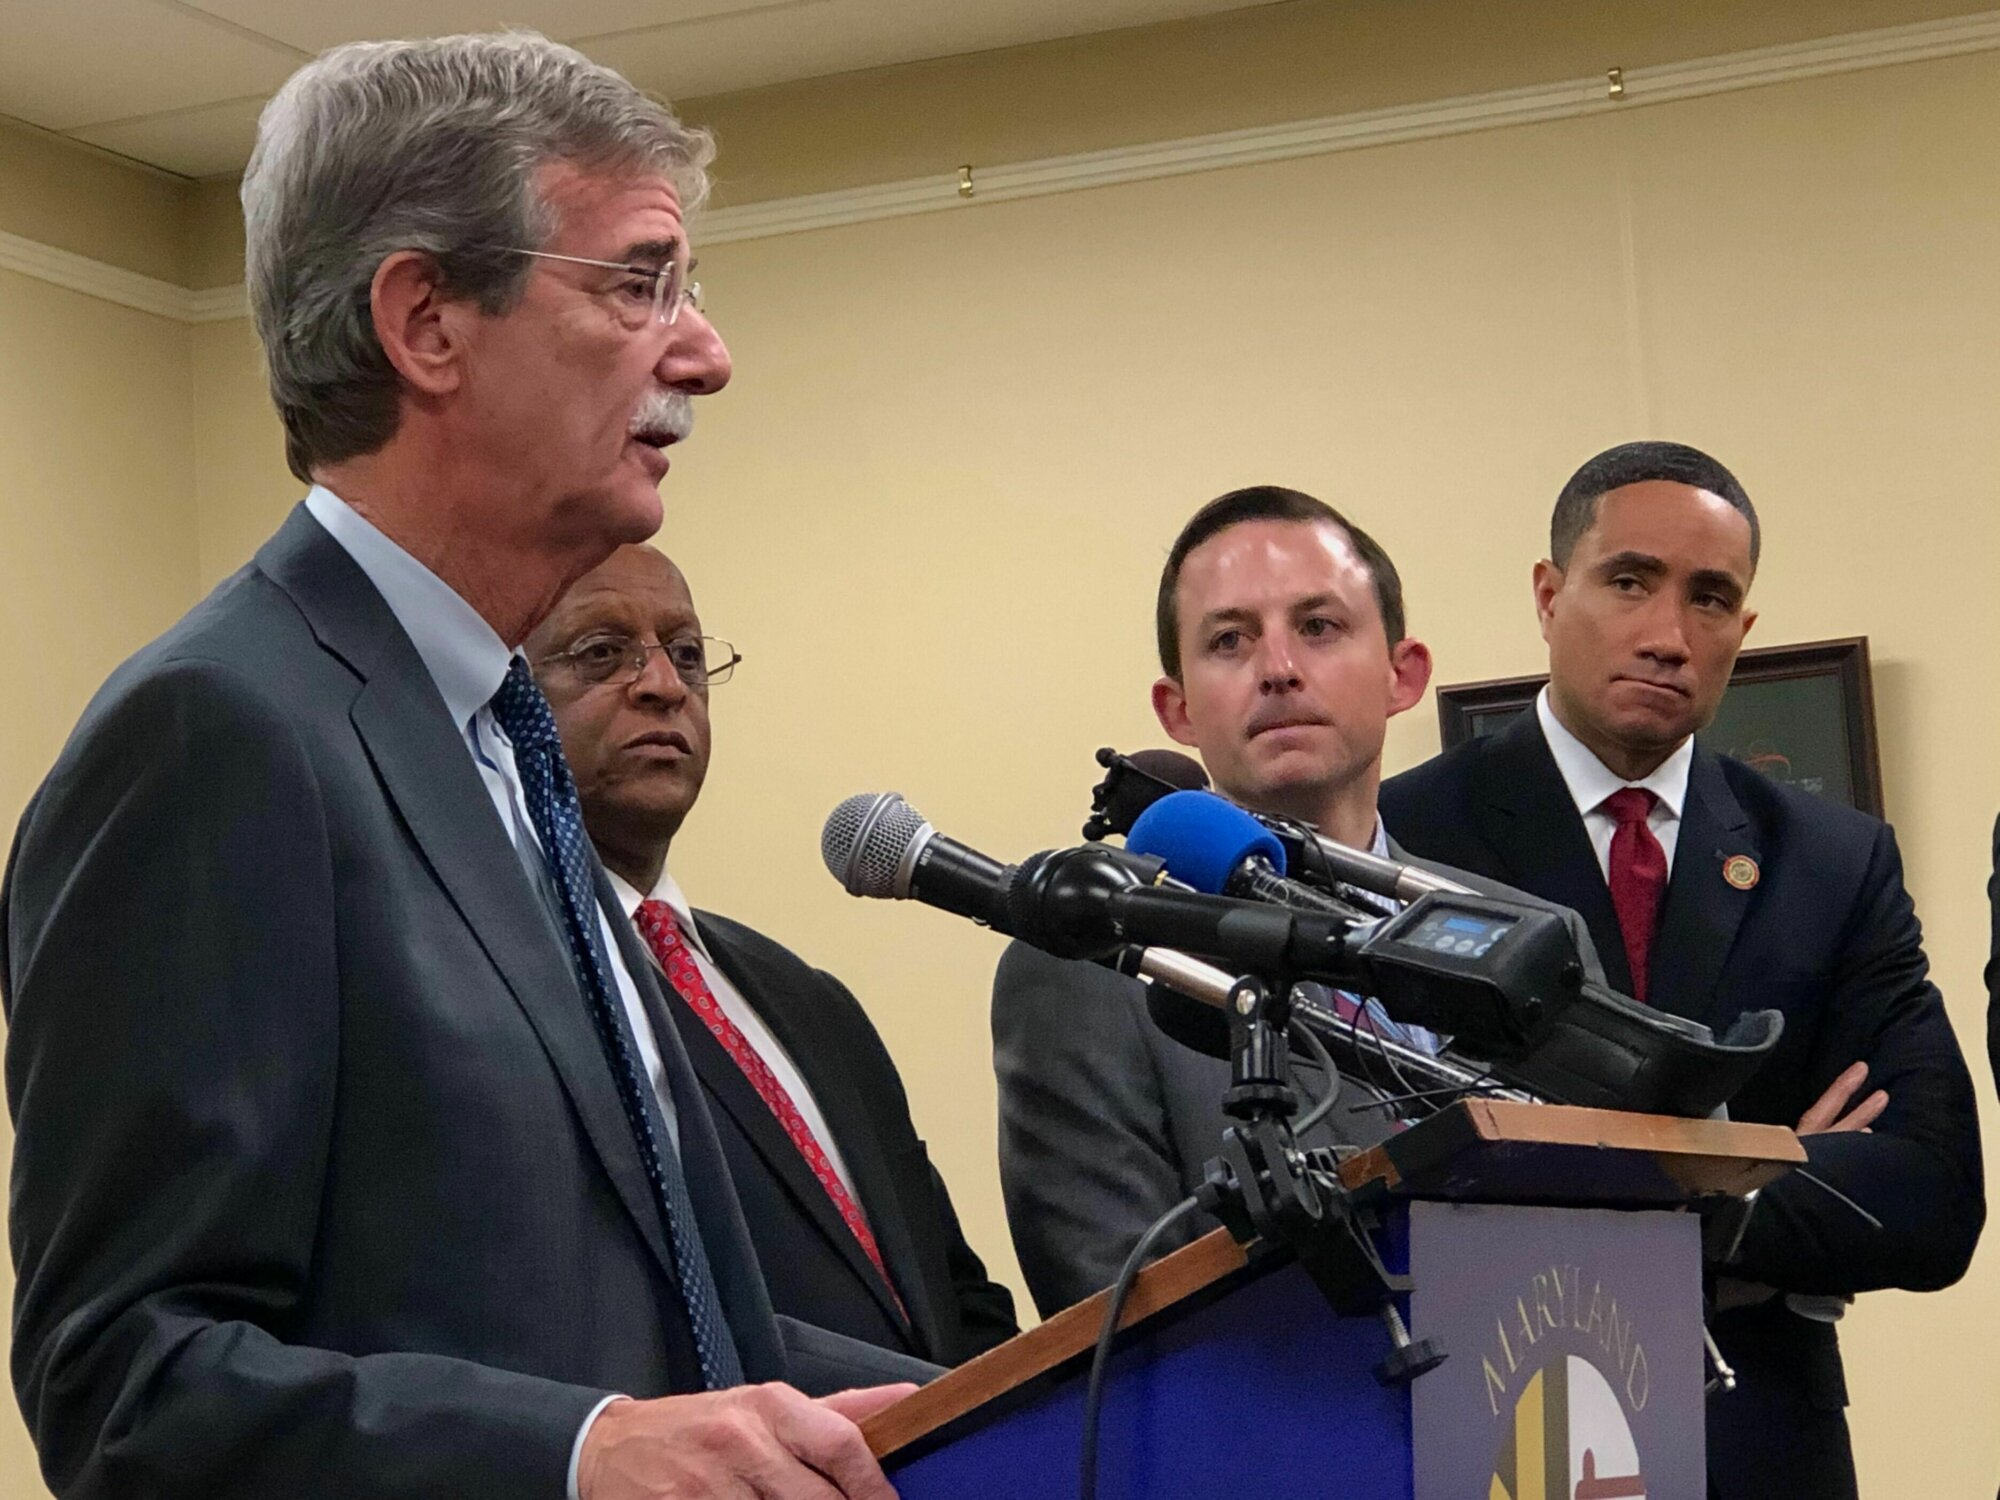 Maryland Attorney General Brian Frosh, Baltimore Mayor Jack Young, Senate President Bill Ferguson and Sen. Will Smith speak in support of ending the practice of suspending driver's licenses. (WTOP/Kate Ryan)